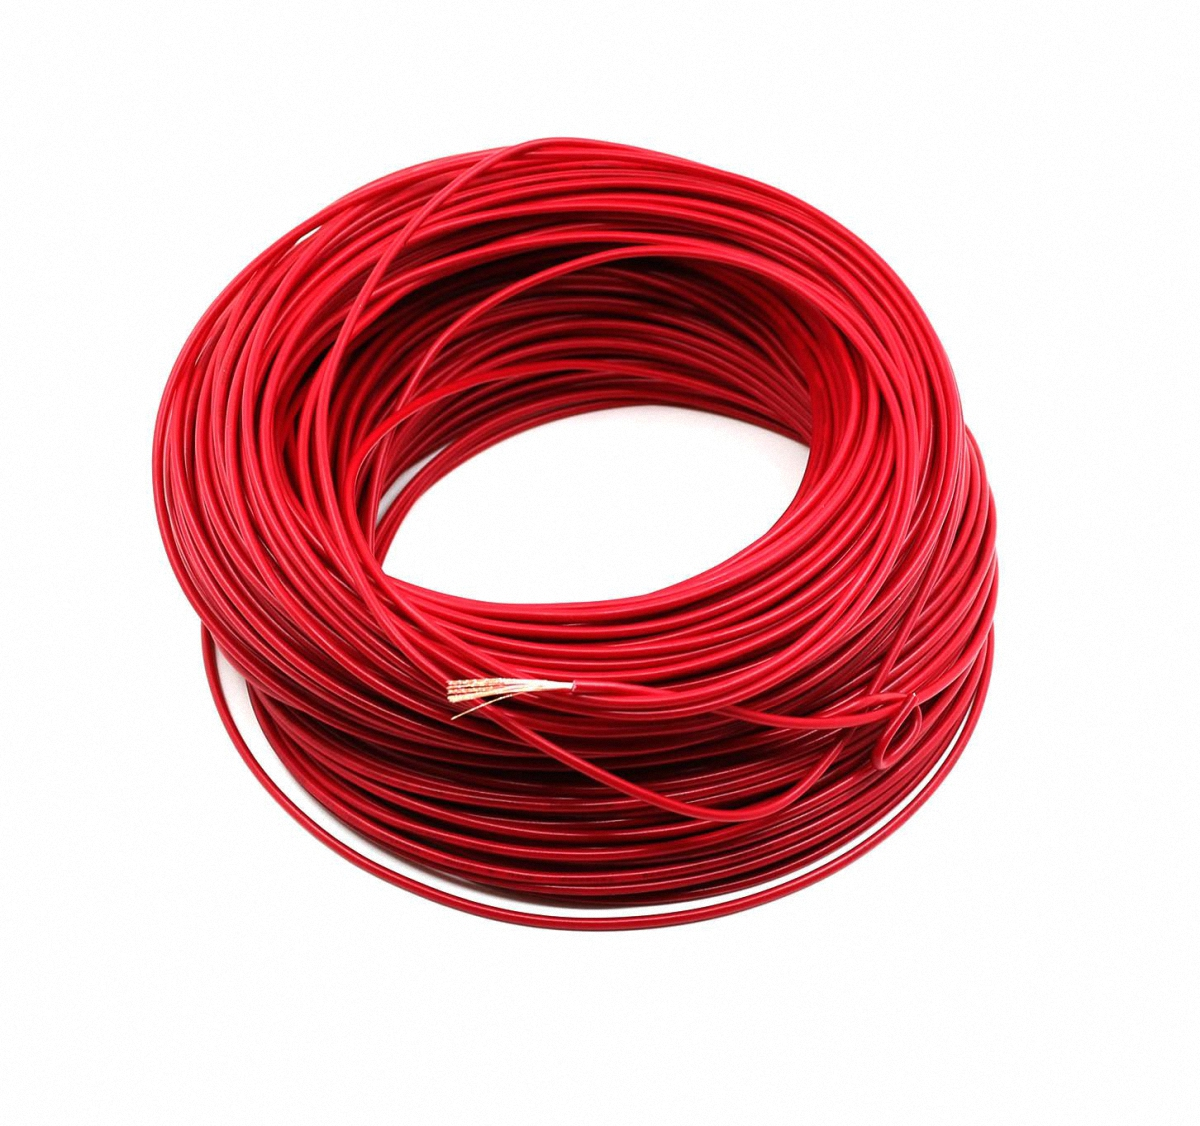 Round cable 7x1,5 mm² electric cable multipolar towing cable to the metro